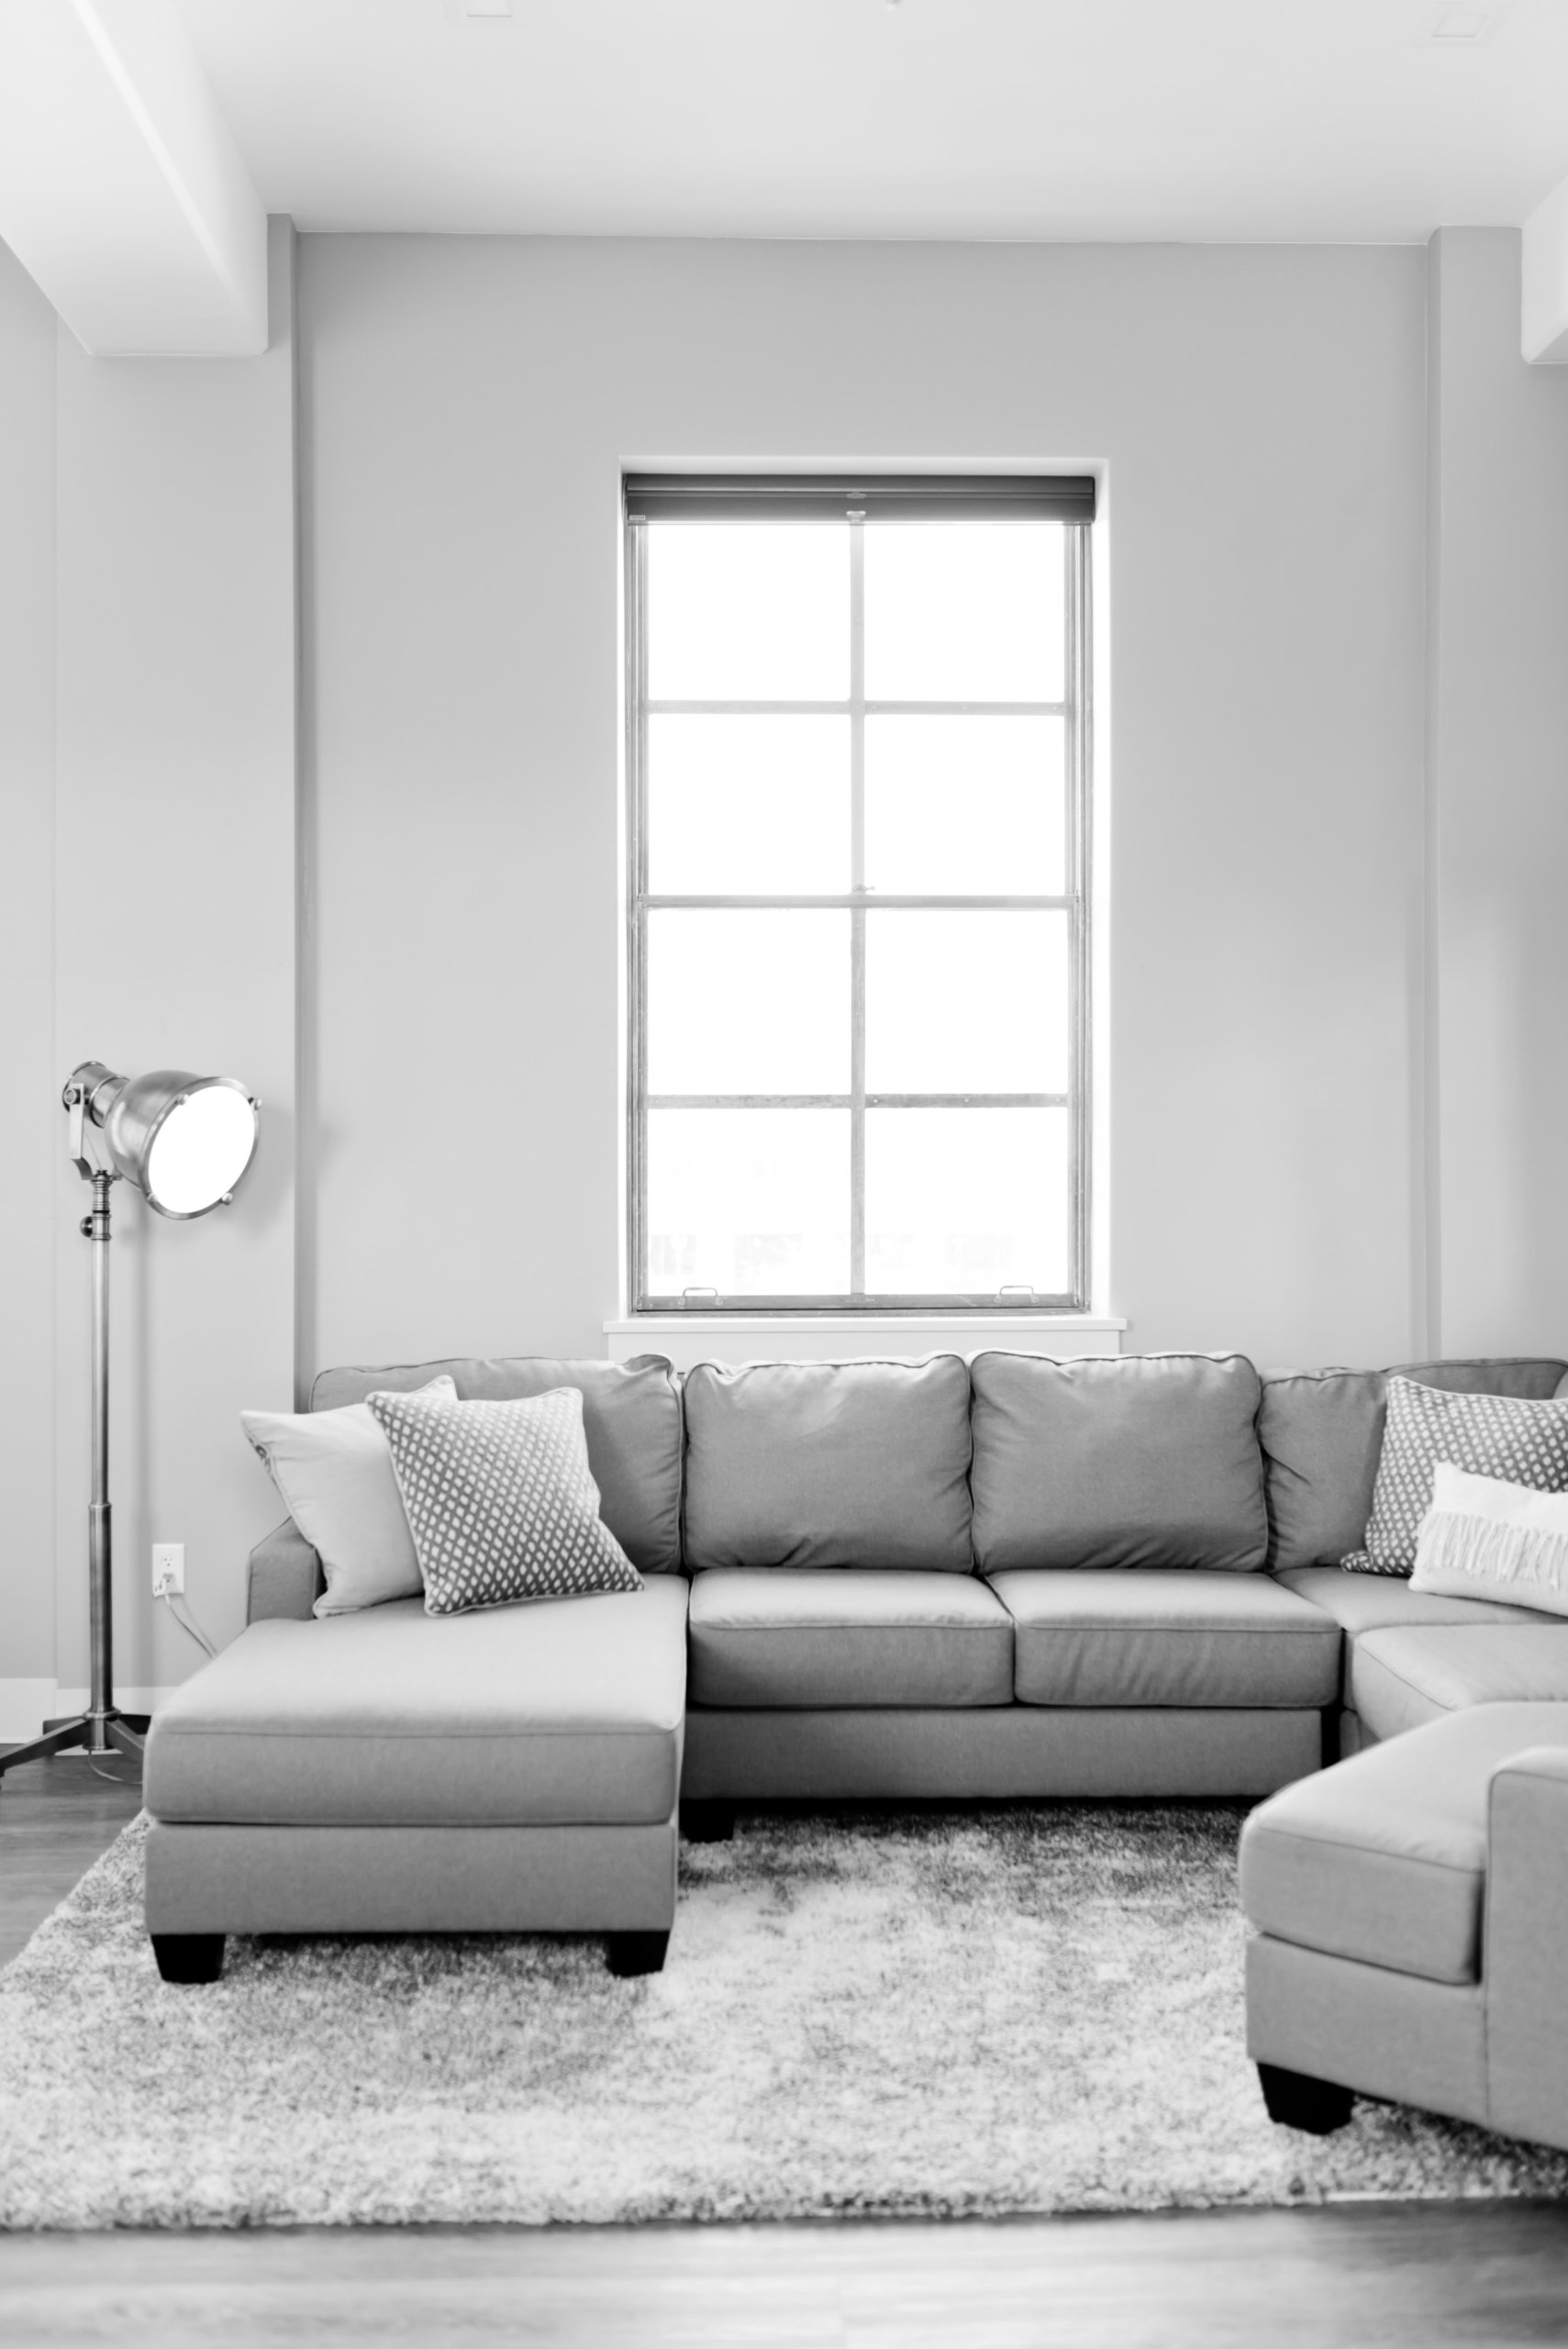 grey paint color with natural light gives illusion of a bigger room